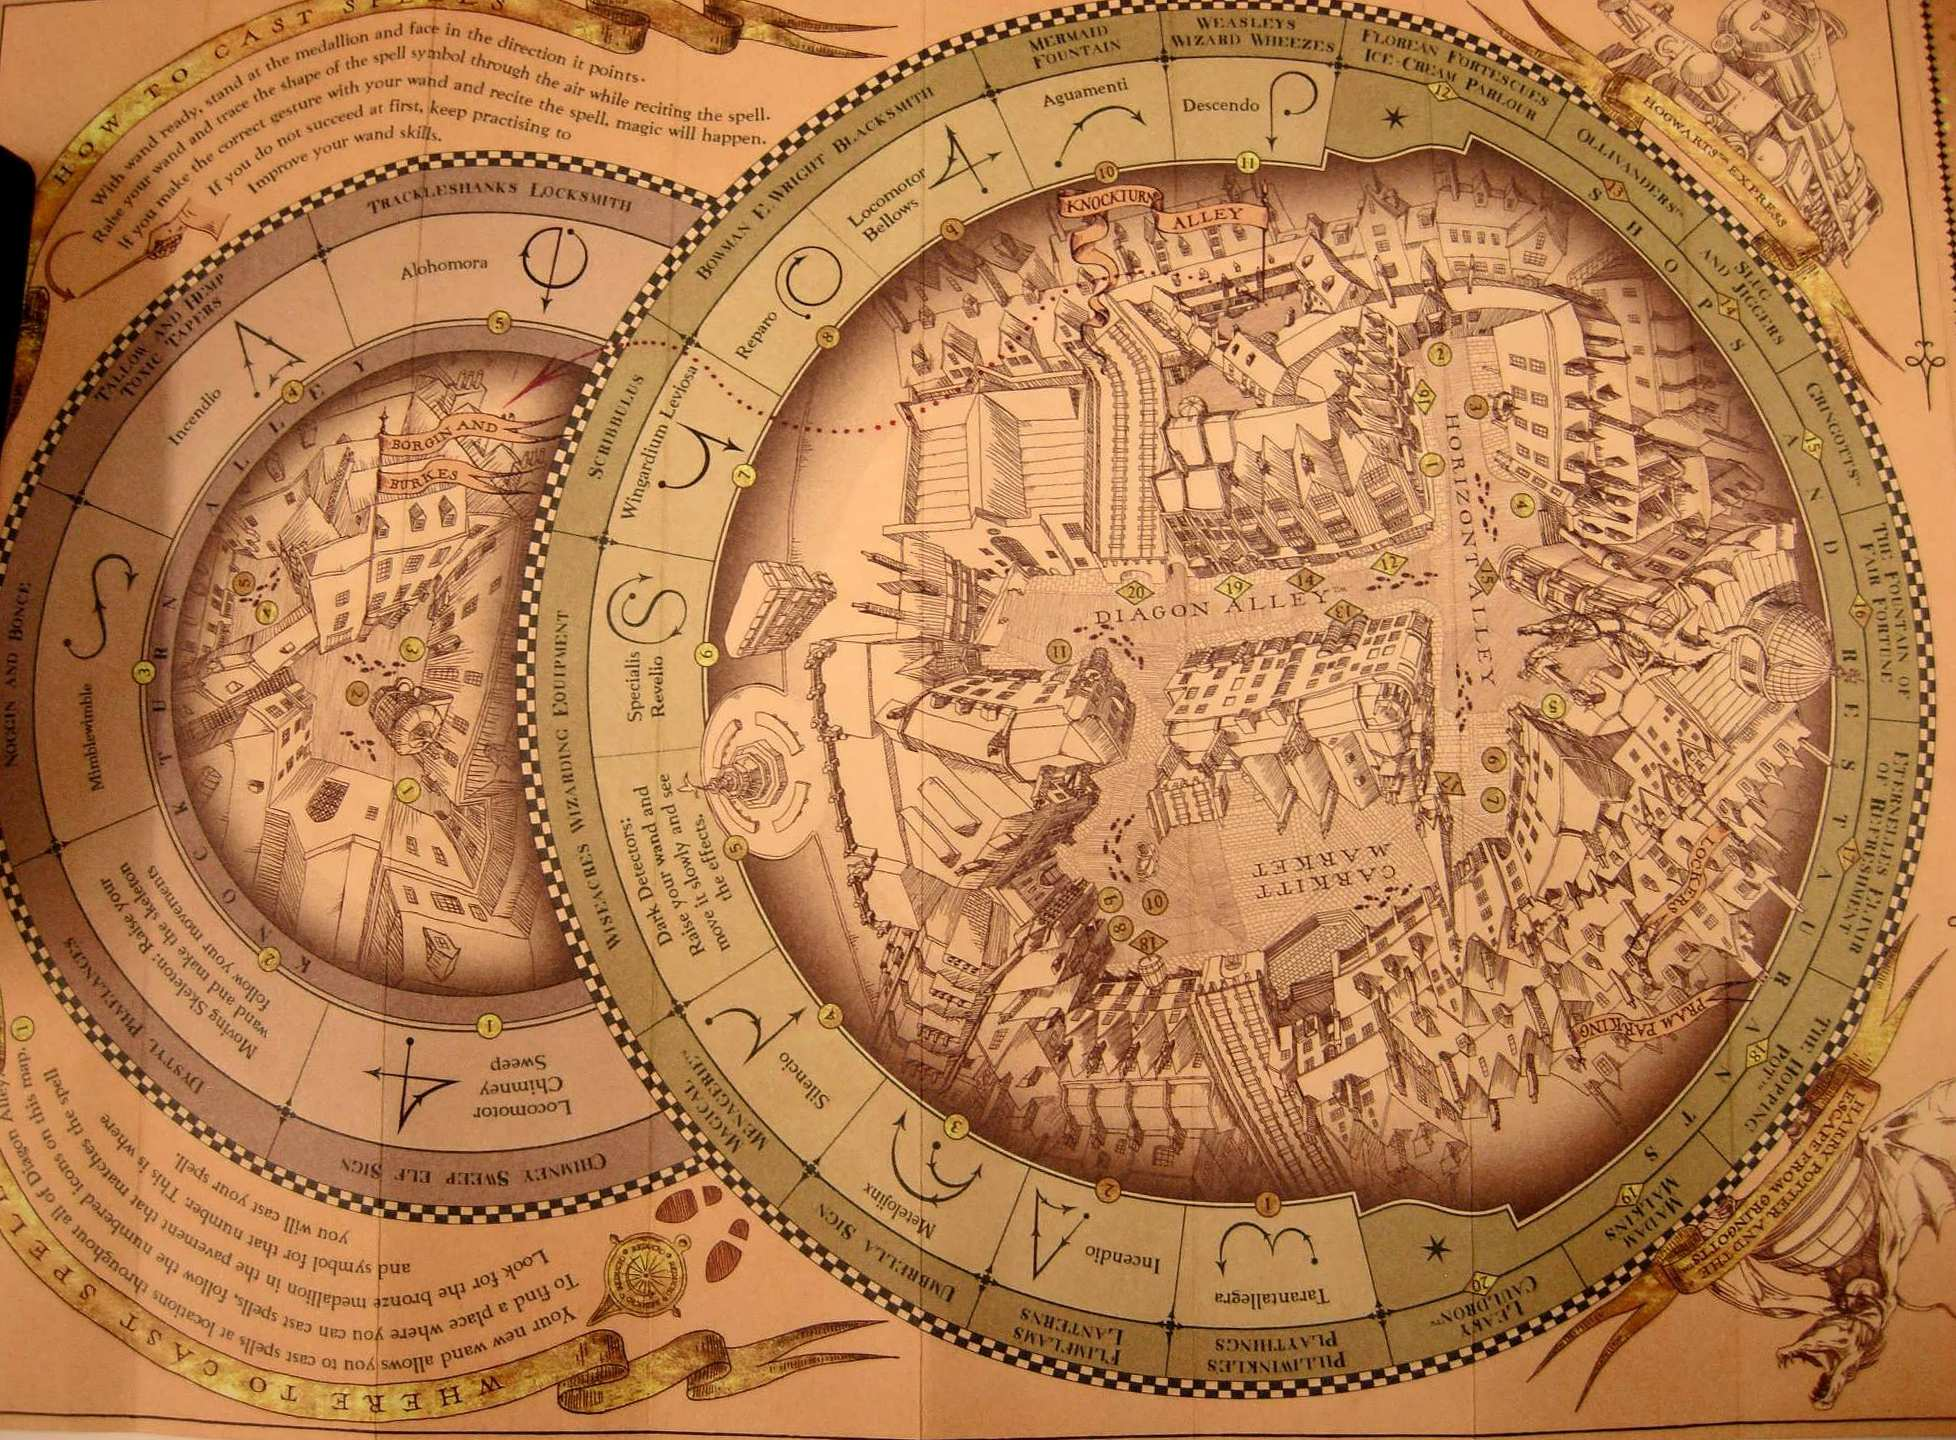 The spell-casting map for Diagon Alley